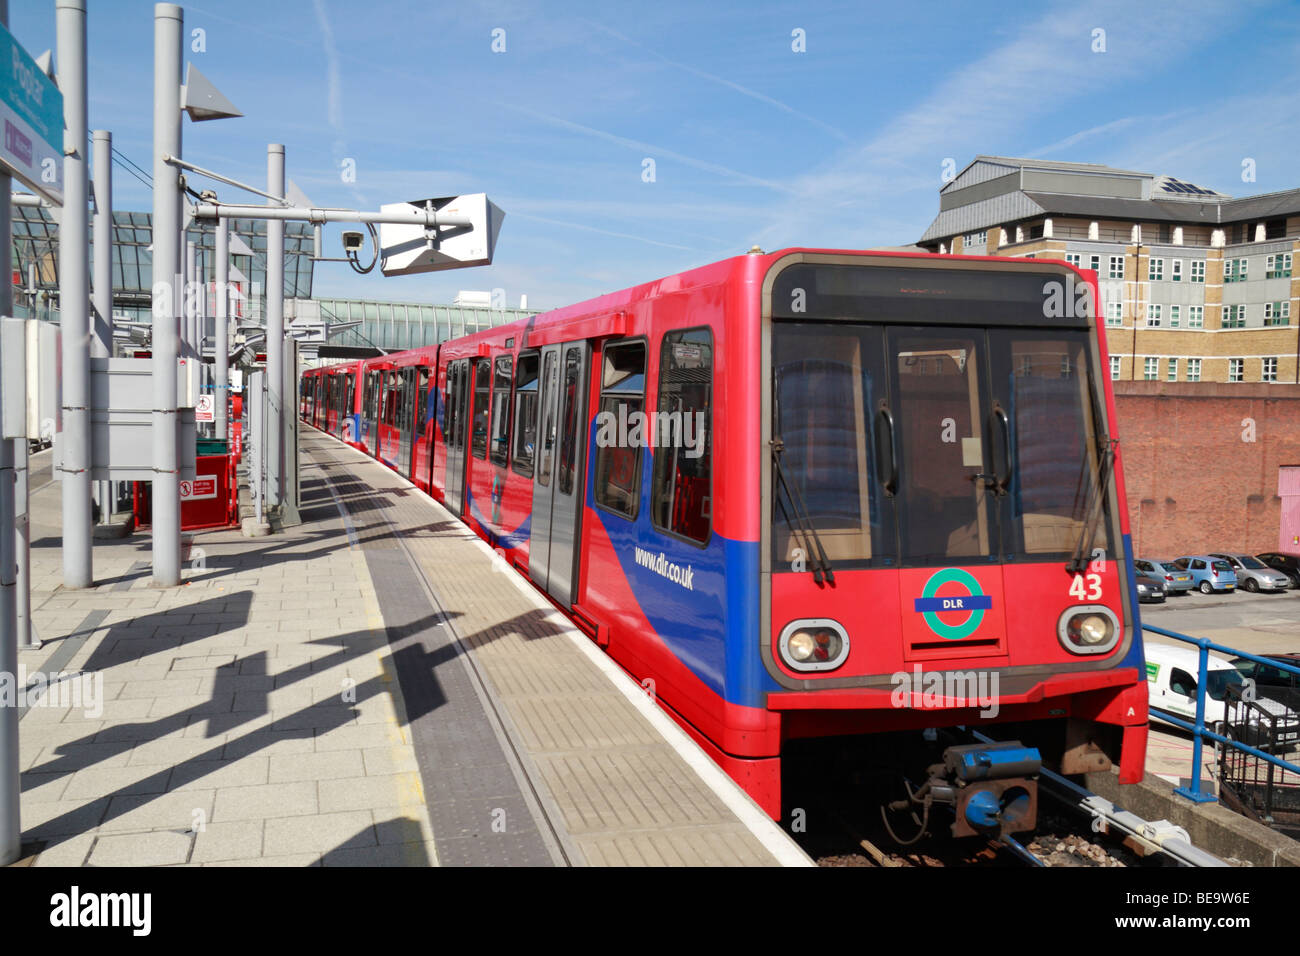 A Docklands Light Railway train pulling in to the platform at Poplar DLR Station, Isle of Dogs, London, UK. - Stock Image